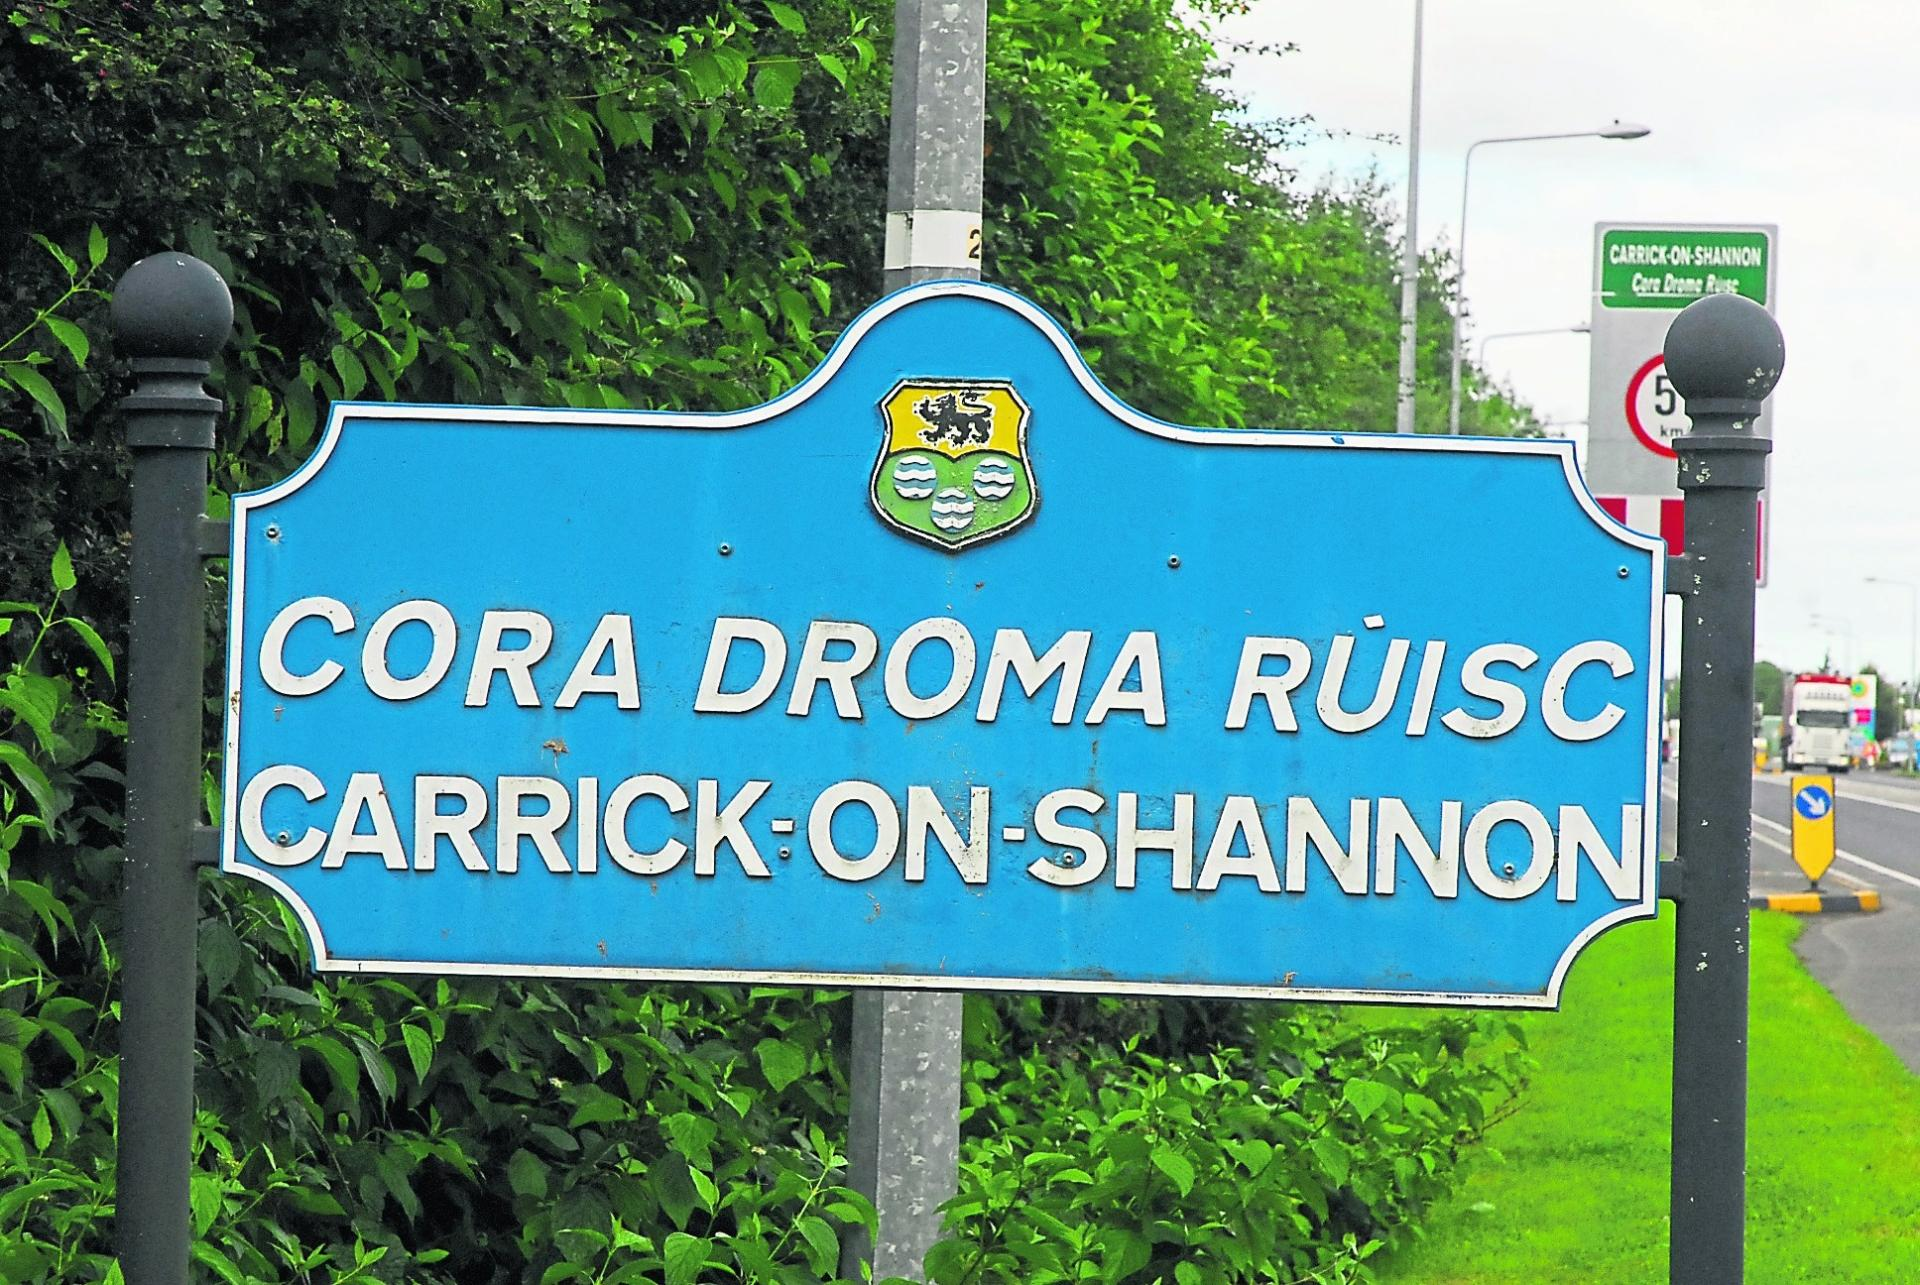 Carrick-on-Shannon - Wikipedia